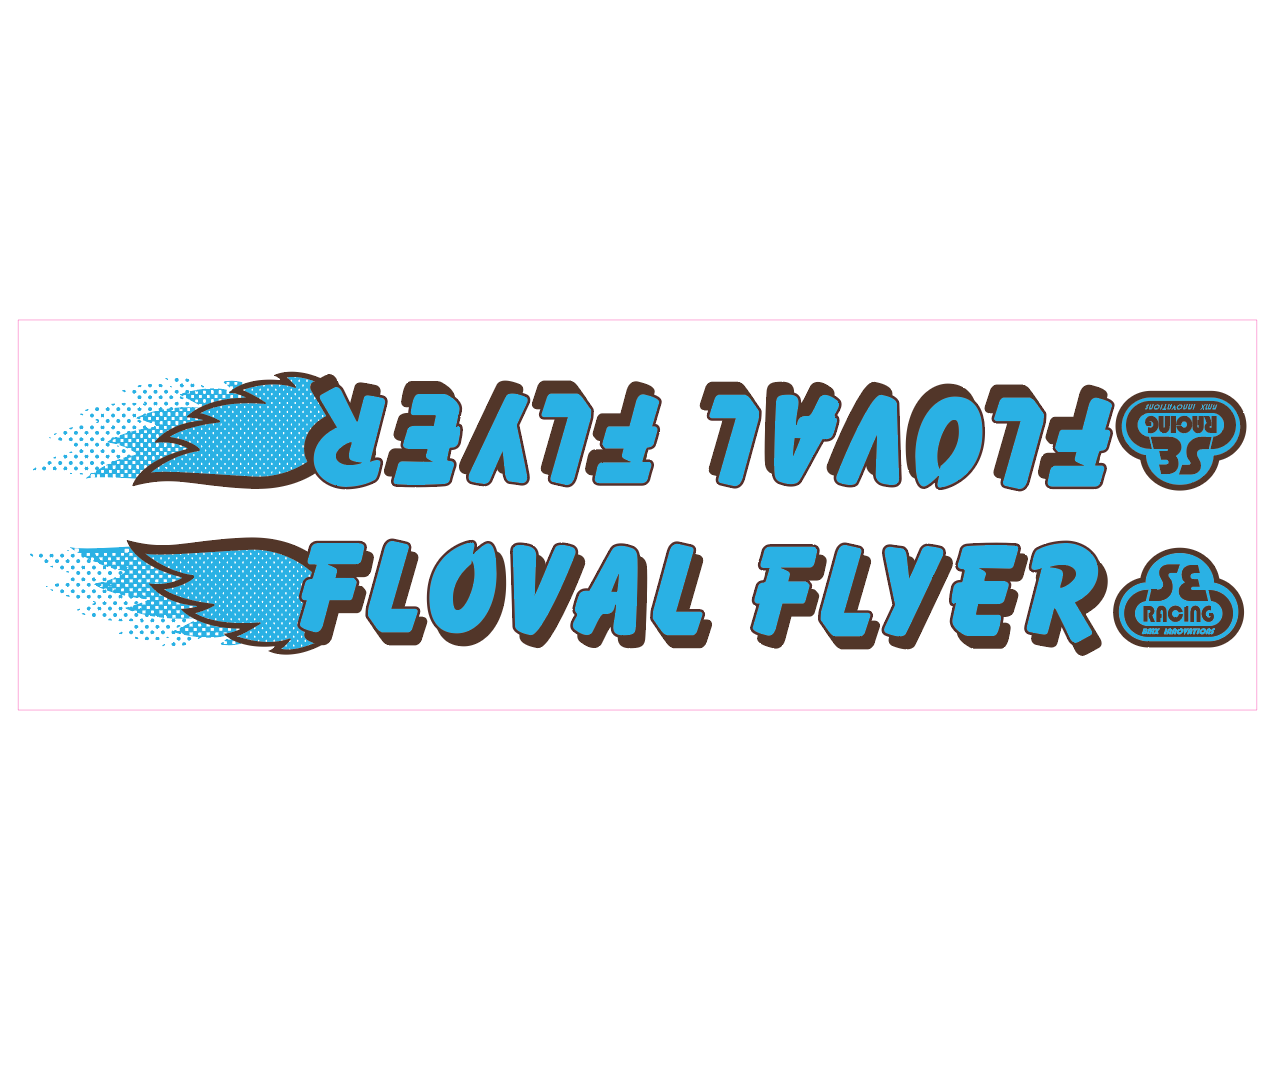 Floval Flyer Decal set blue w//brown shadow